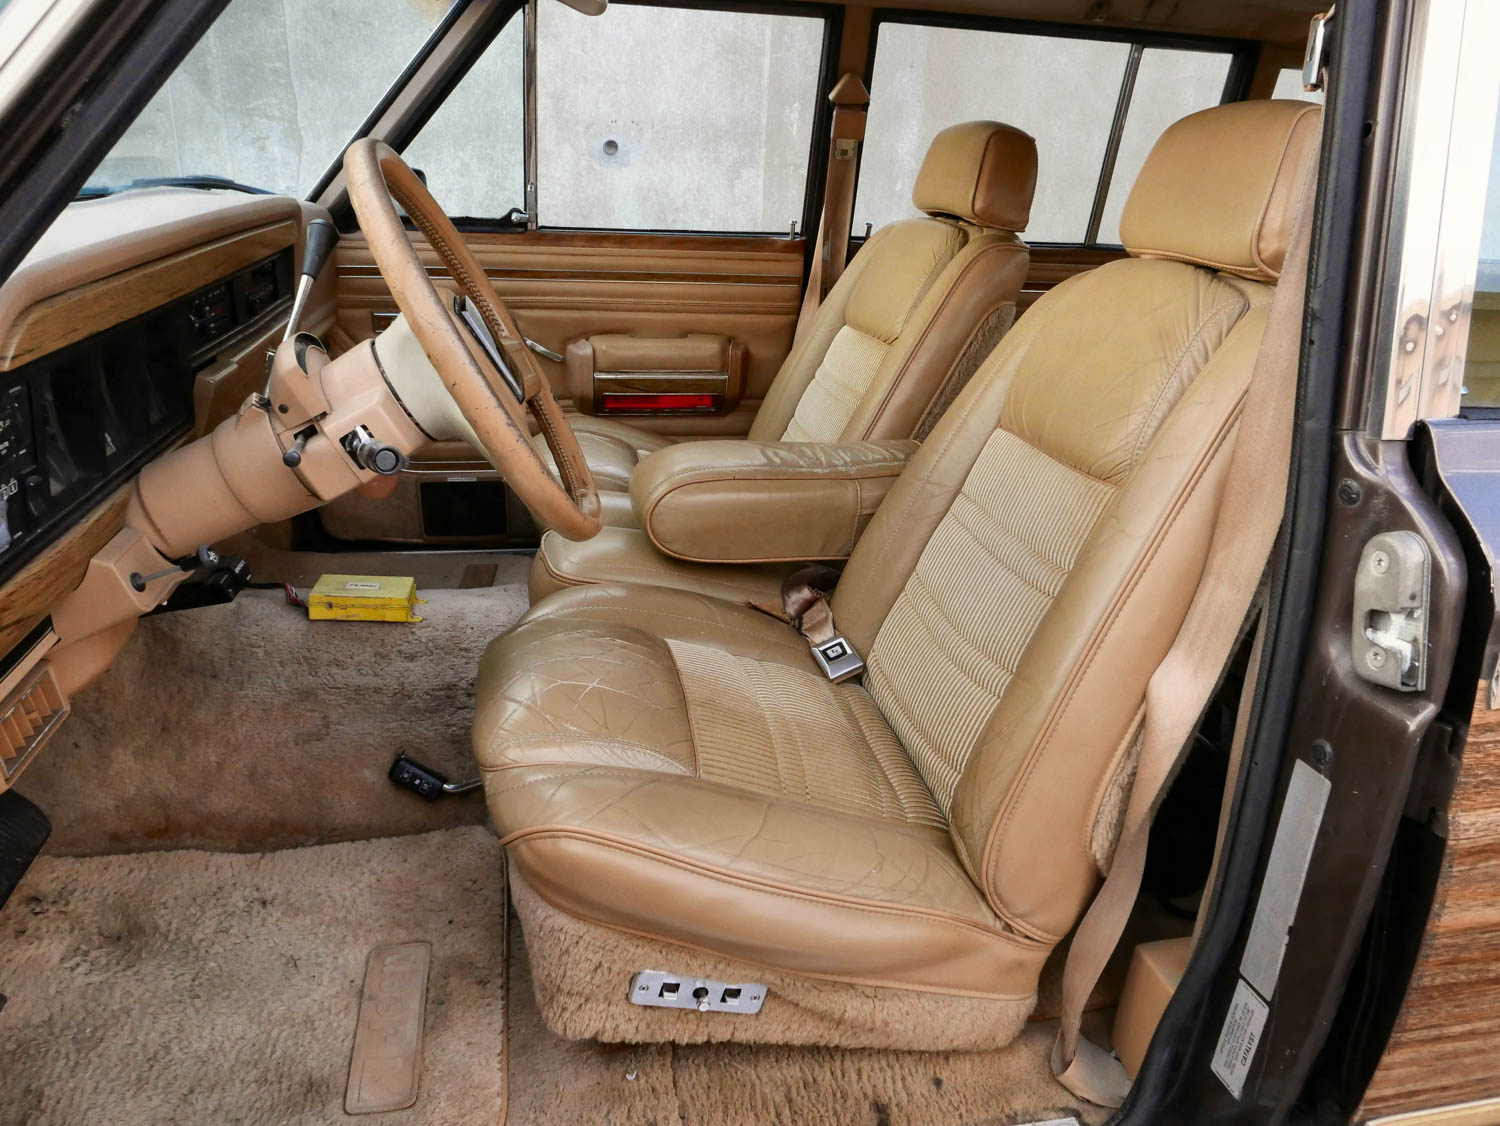 1987 Jeep Grand Wagoneer front seat detail